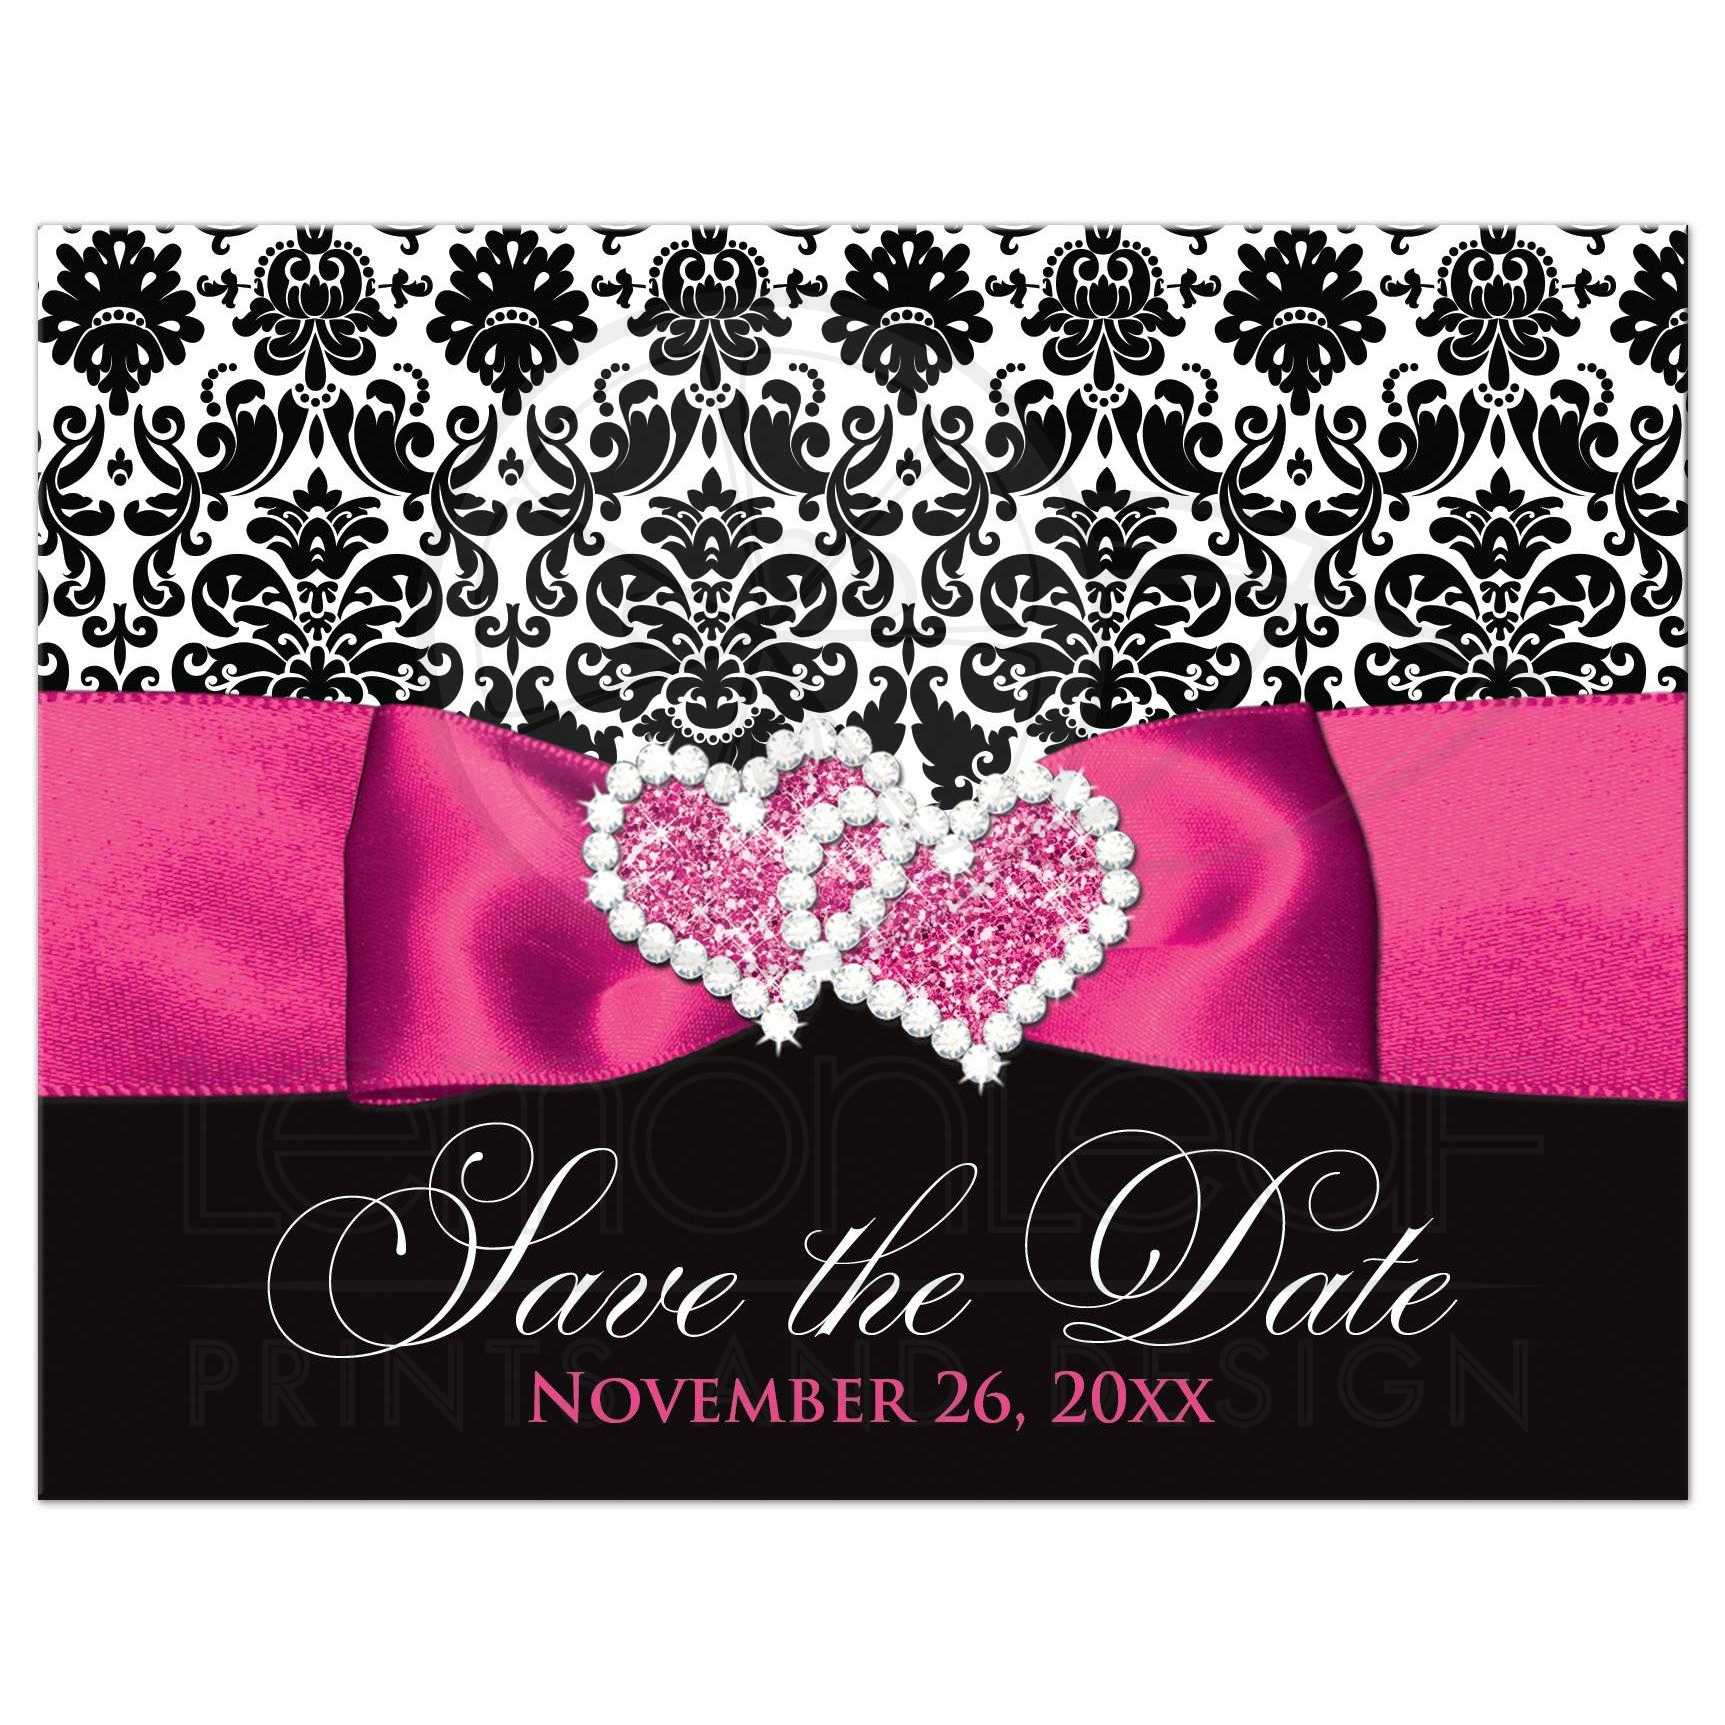 wedding save the date postcard black and white damask printed